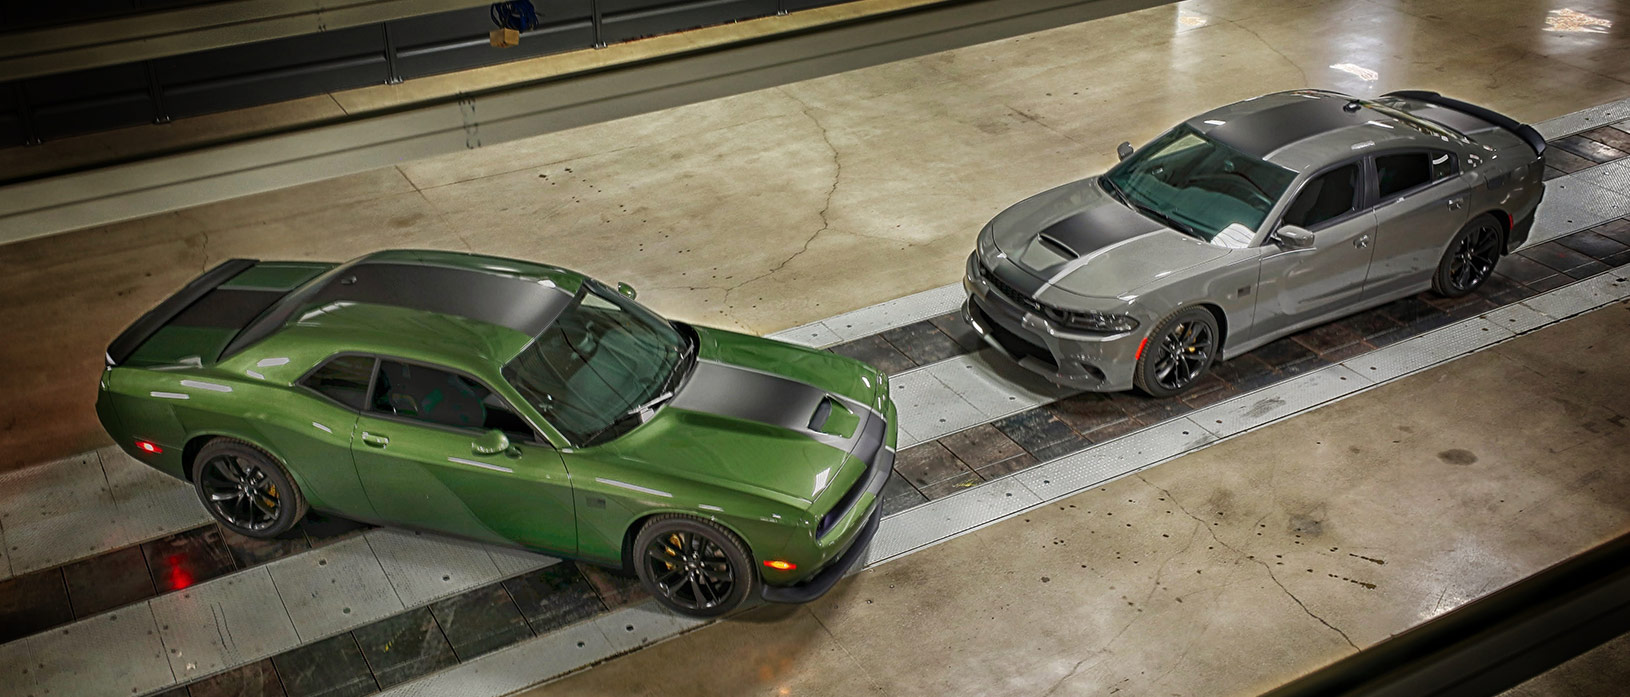 F8 green 2019 Challenger R/T and detroyer gray 2019 Charger Scat Pack in Stars & Stripes Package